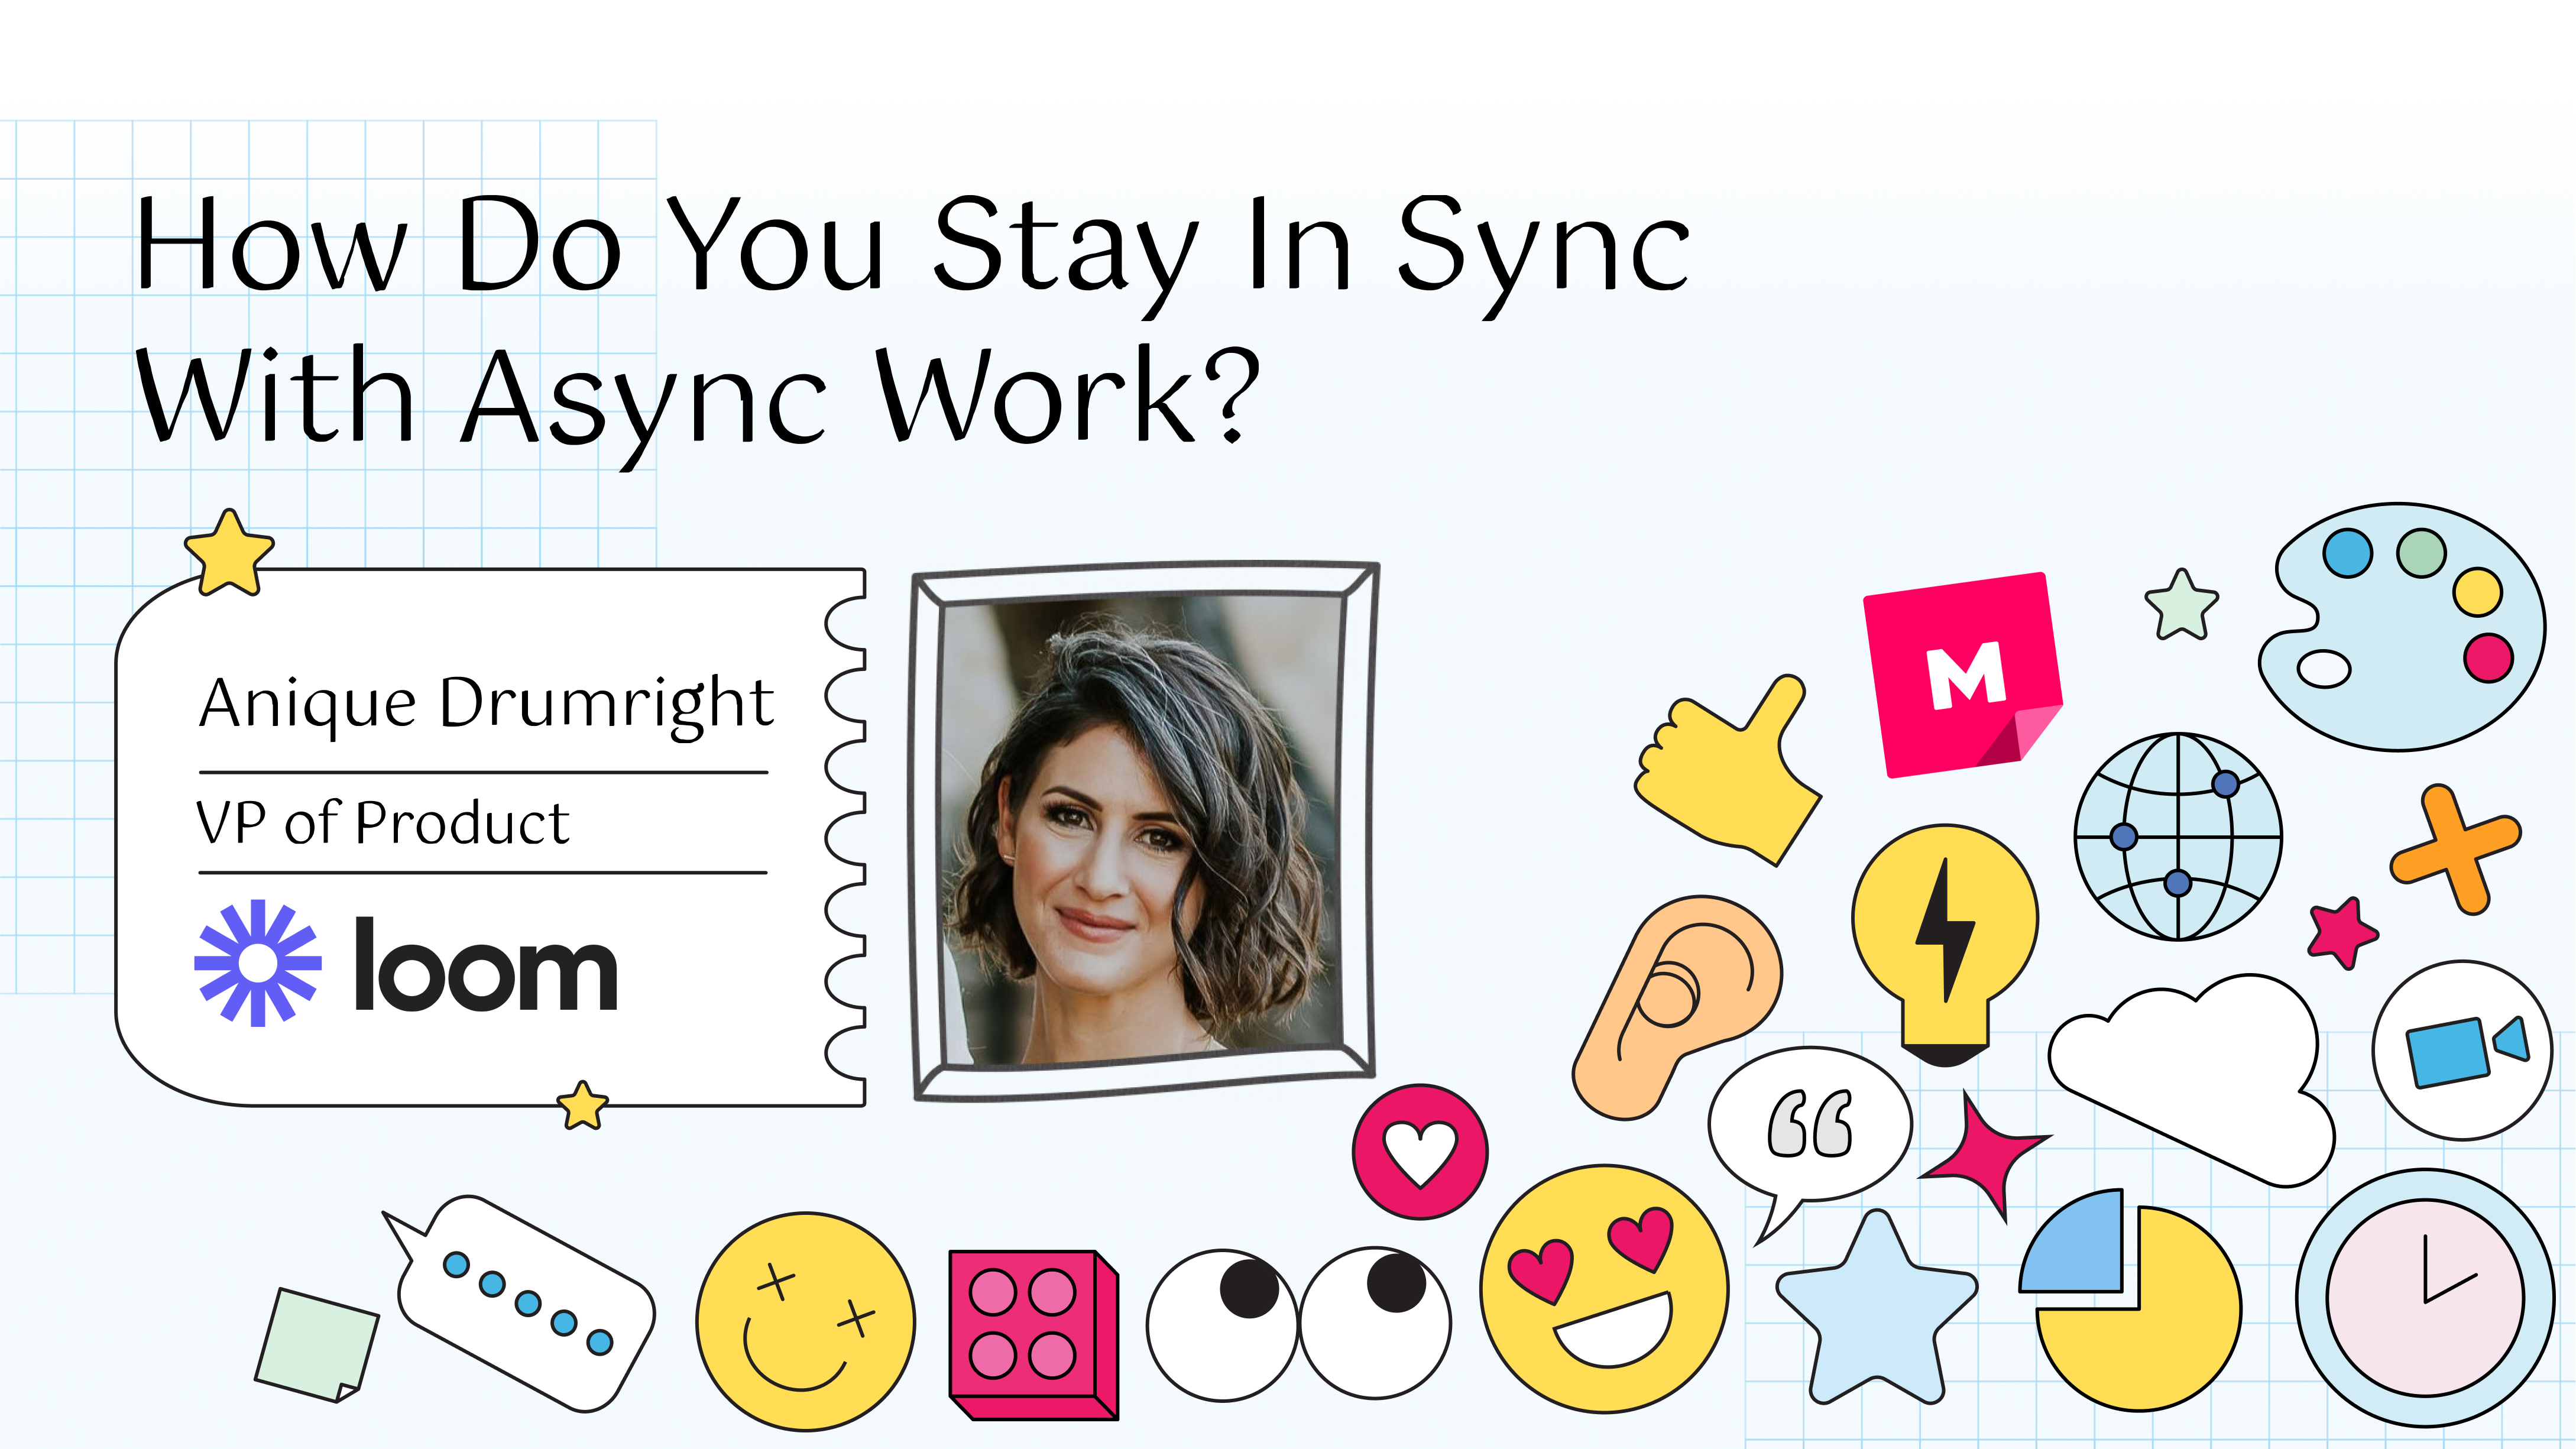 How Do You Stay in Sync With Async Work?